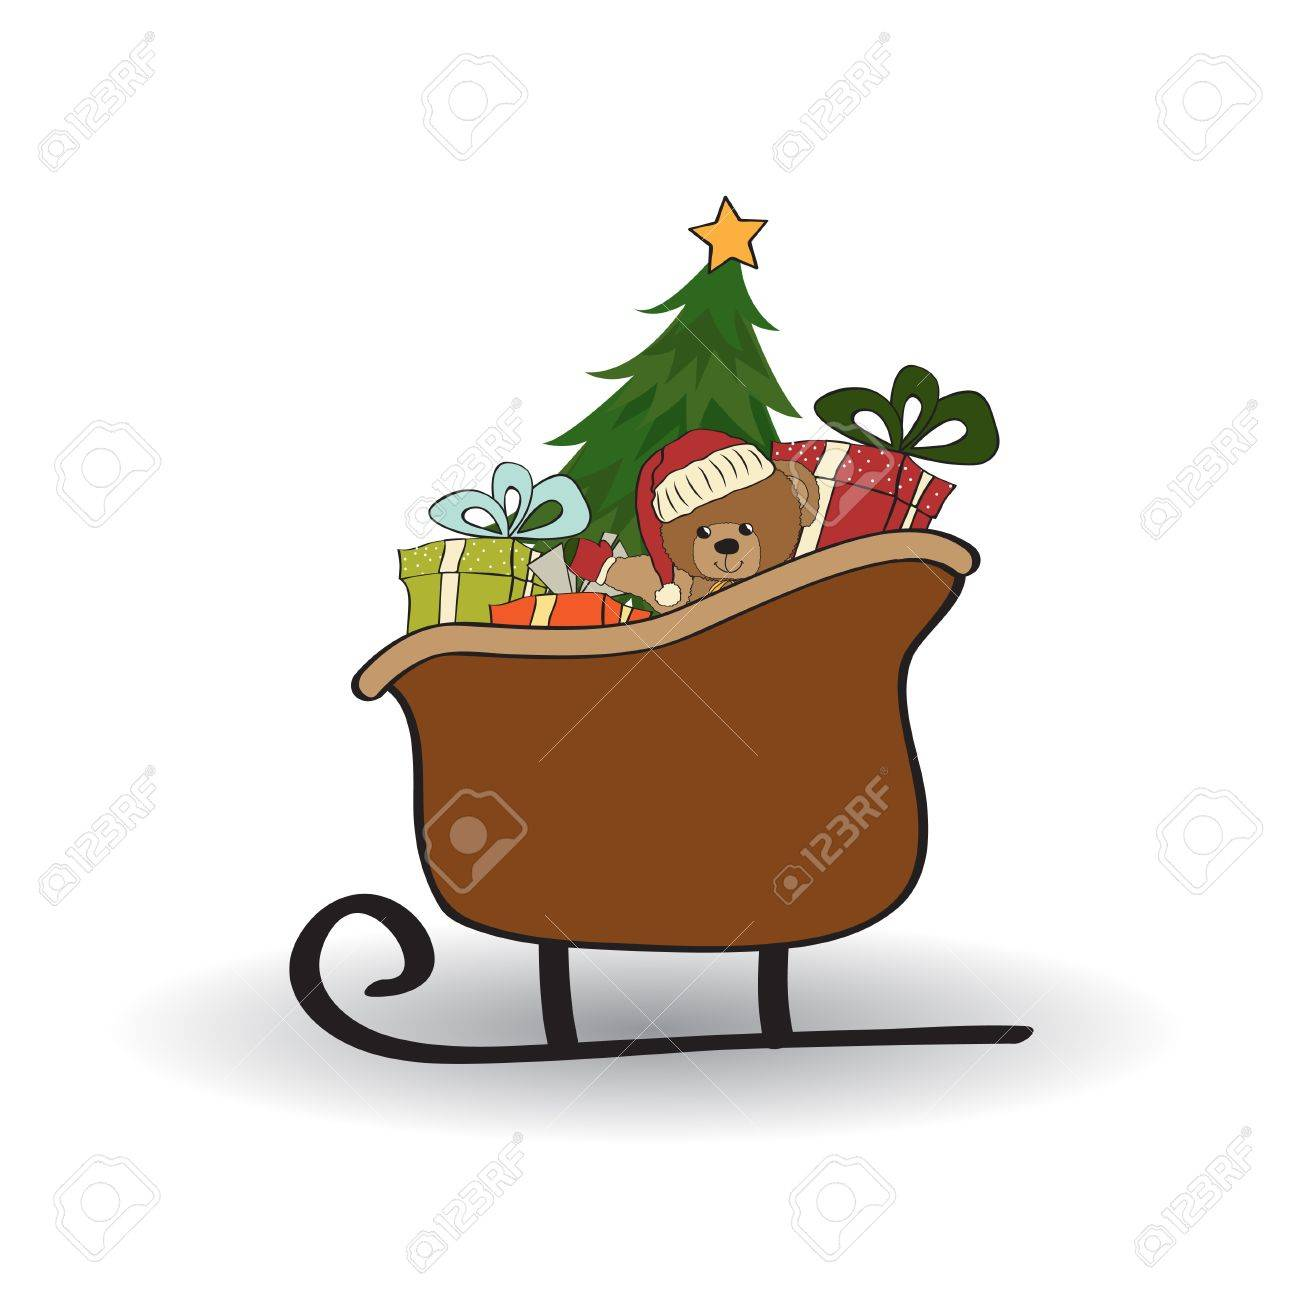 Christmas sleigh with gifts, isolated on white background Stock Vector - 11358691